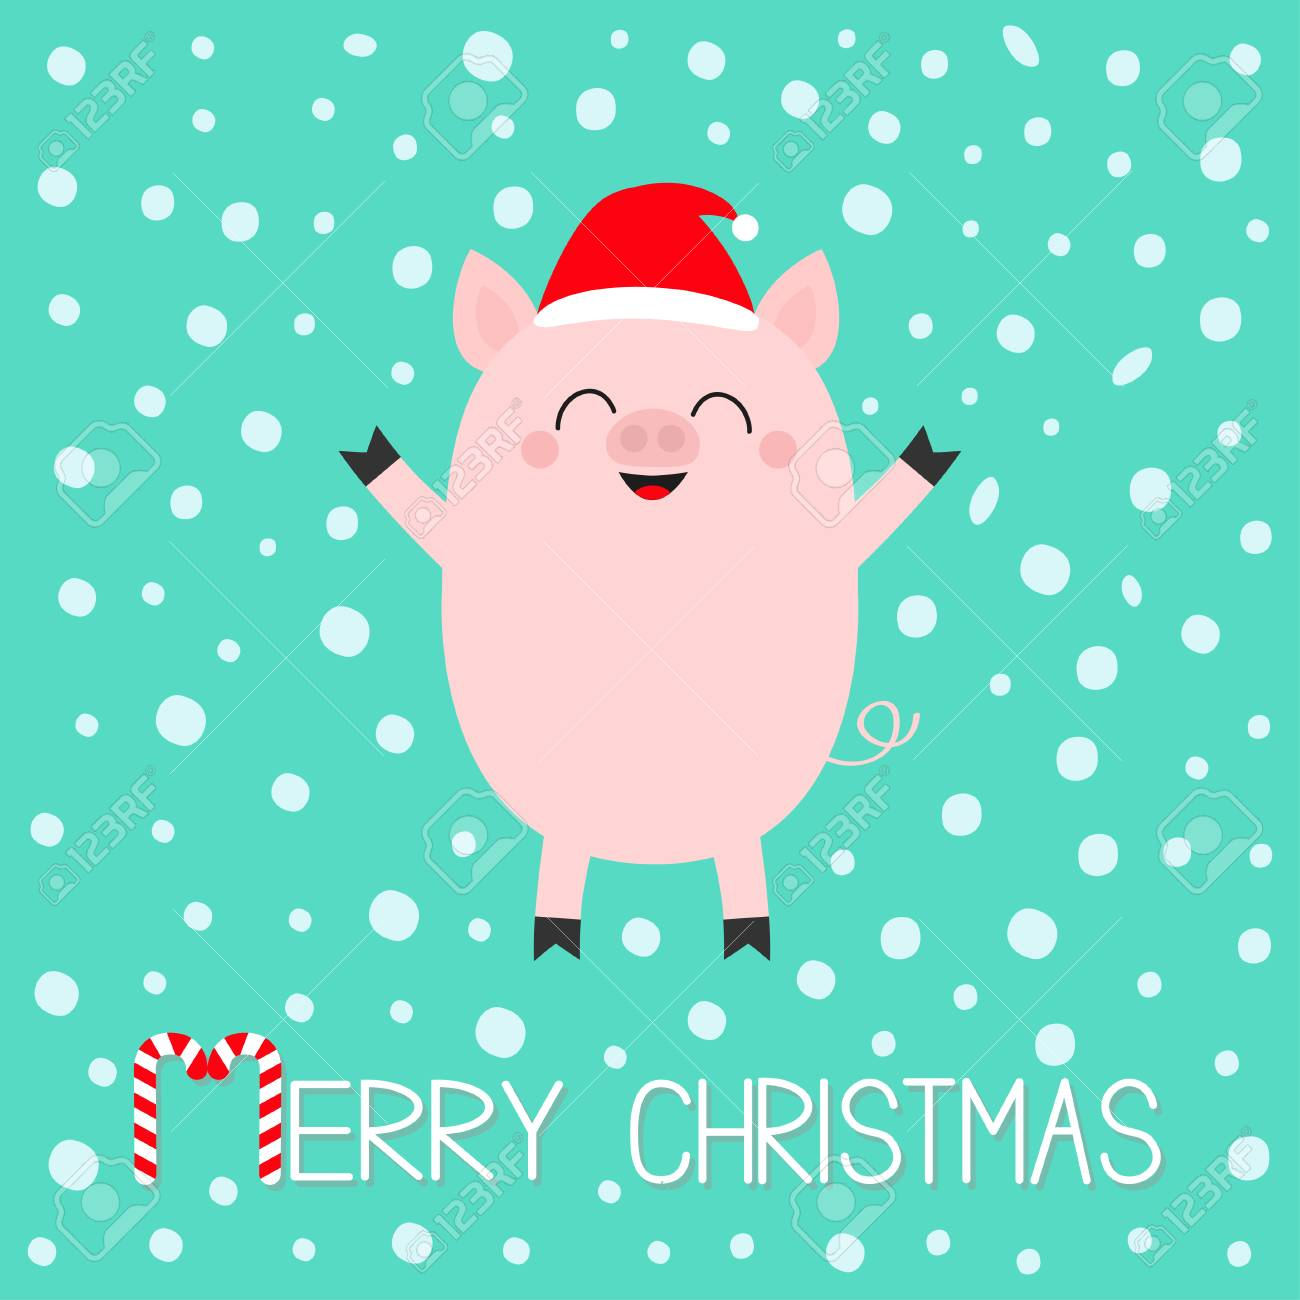 Christmas Pig.Merry Christmas Pig Piglet Cute Cartoon Funny Baby Character